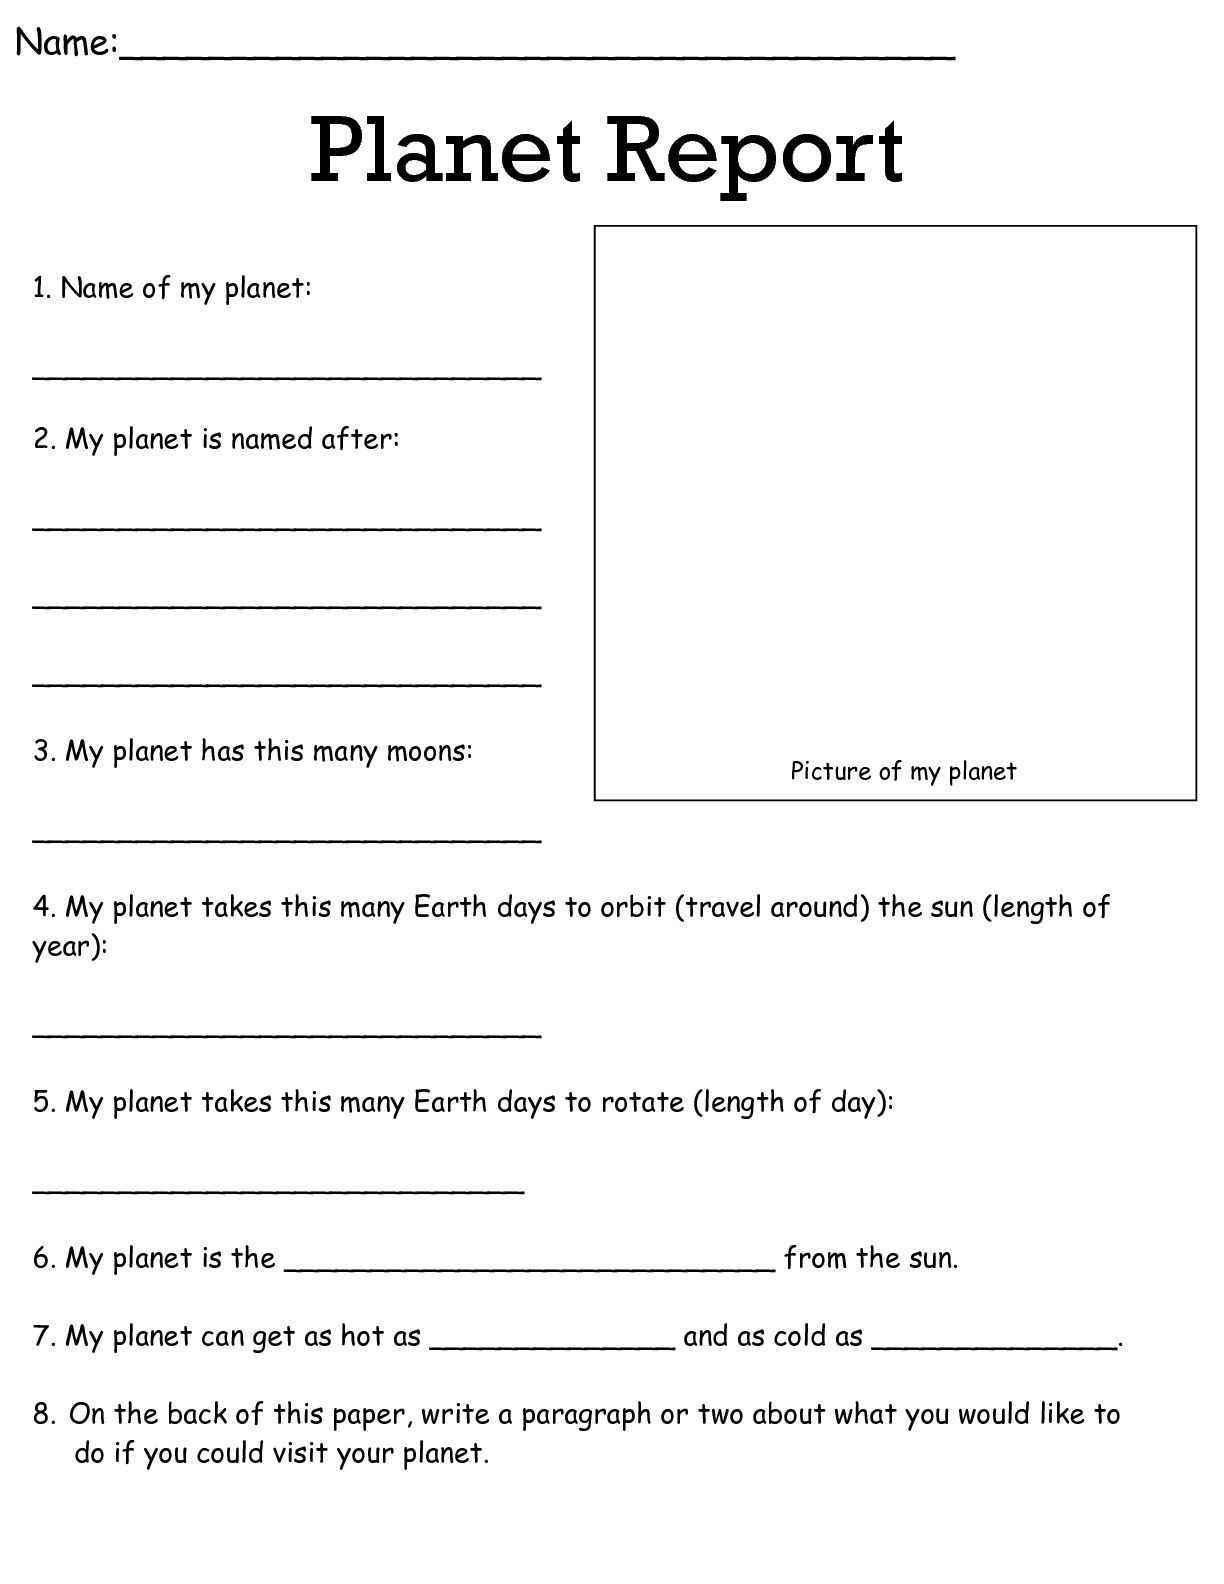 6th Grade Science Worksheets 5th Grade Science Worksheets with Answer Key